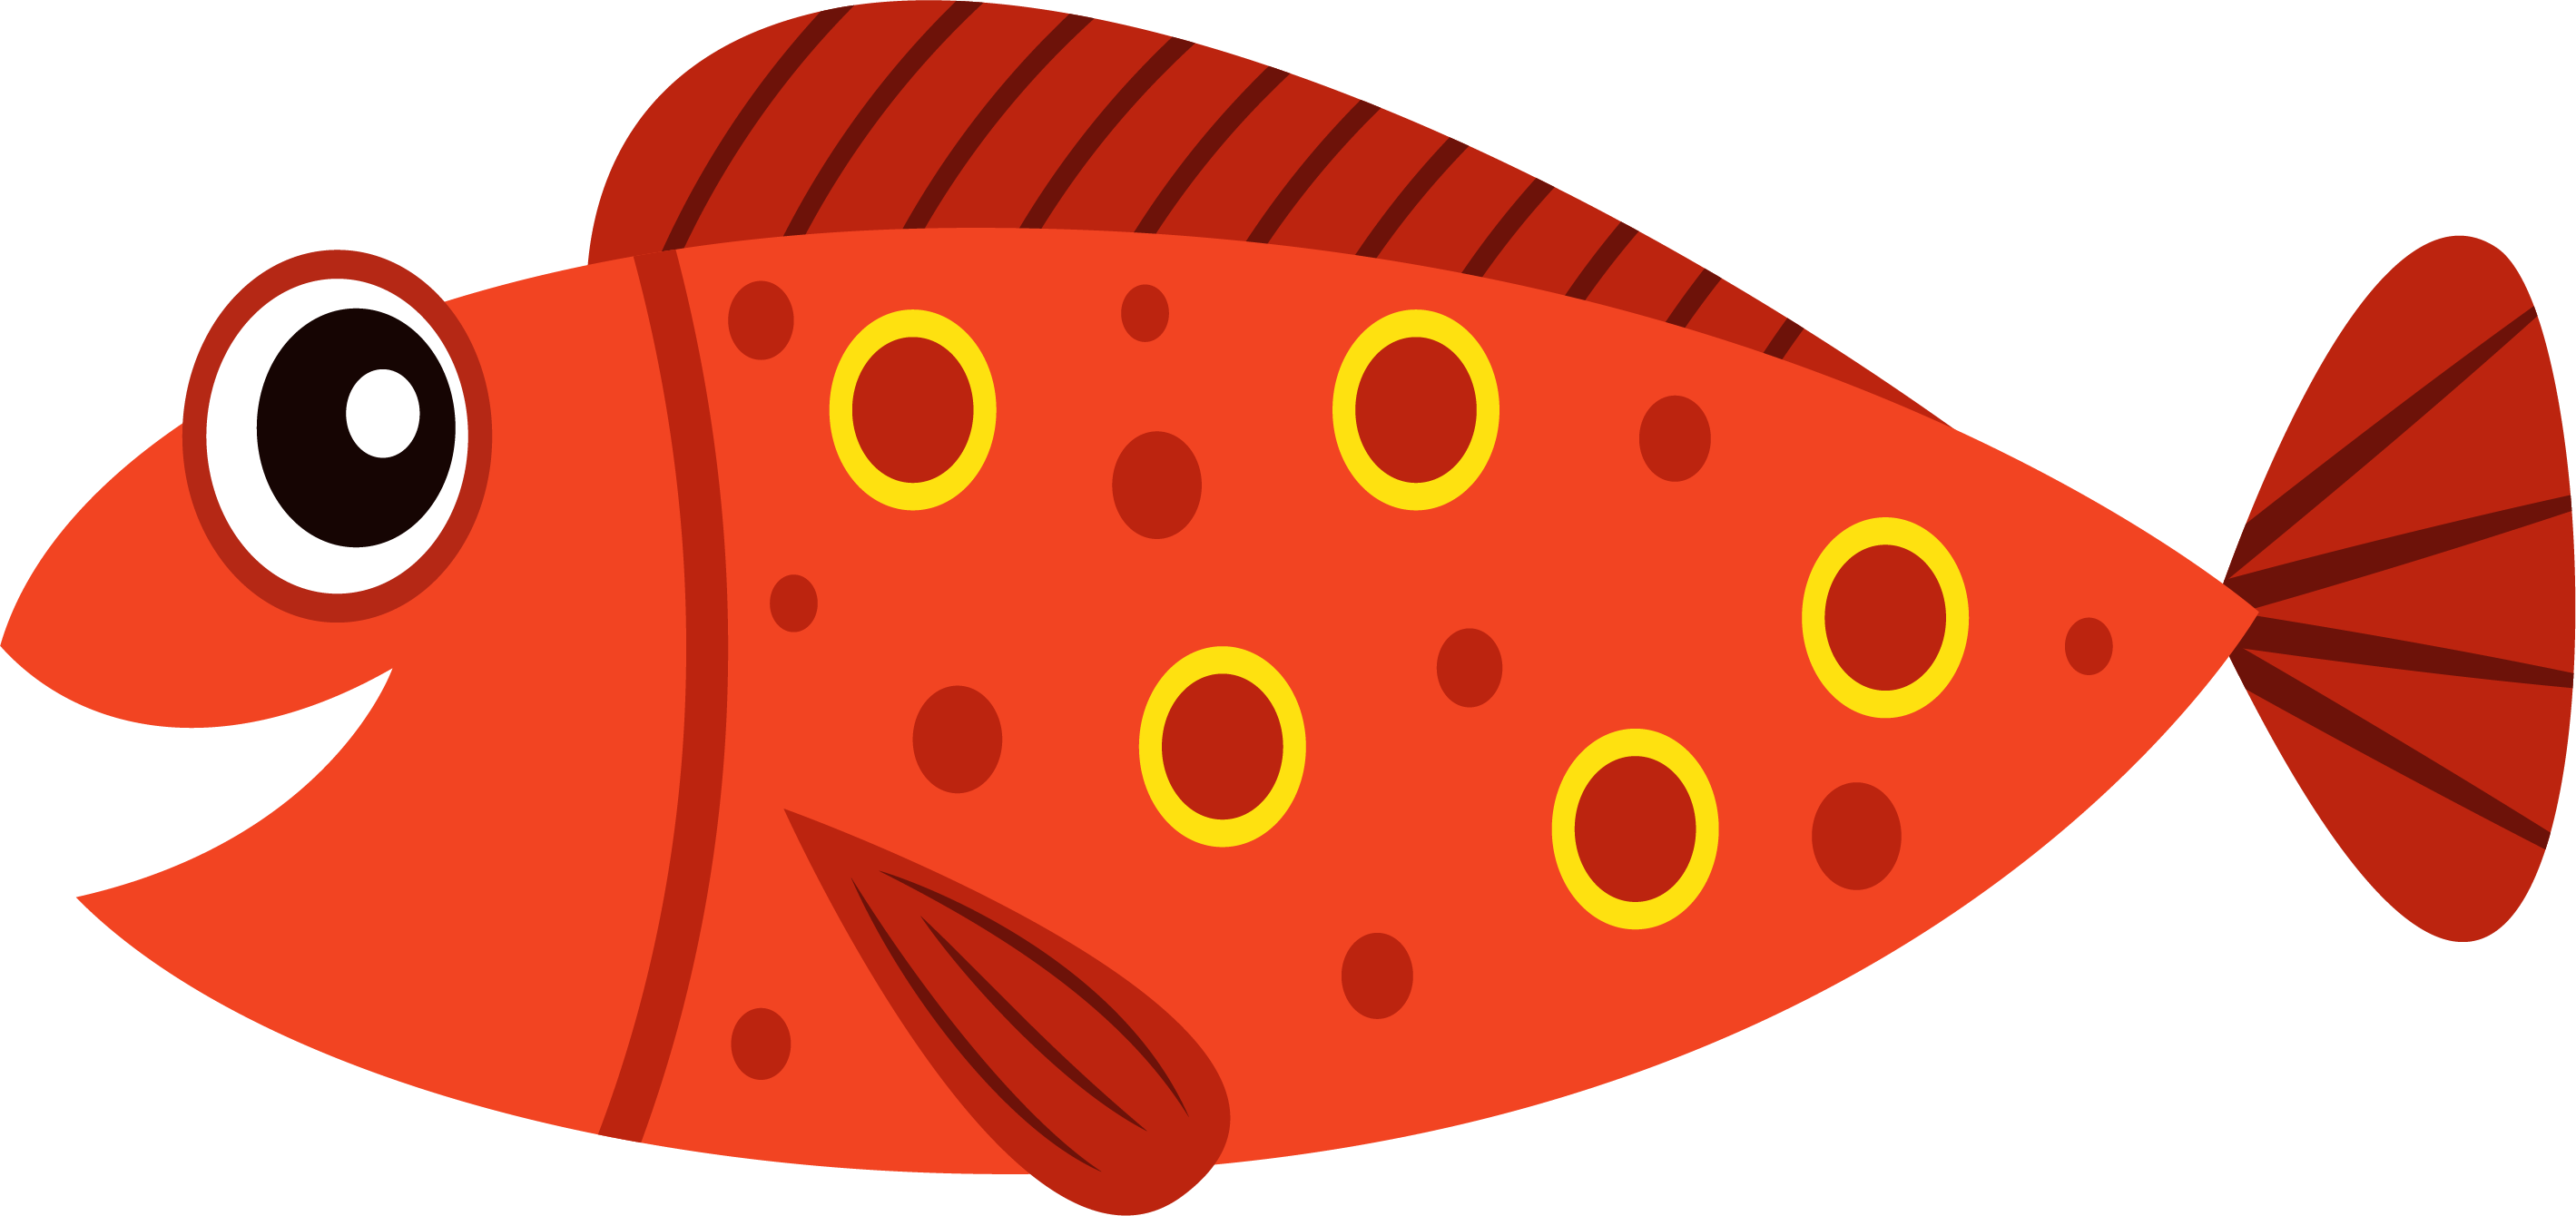 Png images transparent pictures. Lake clipart fish clipart